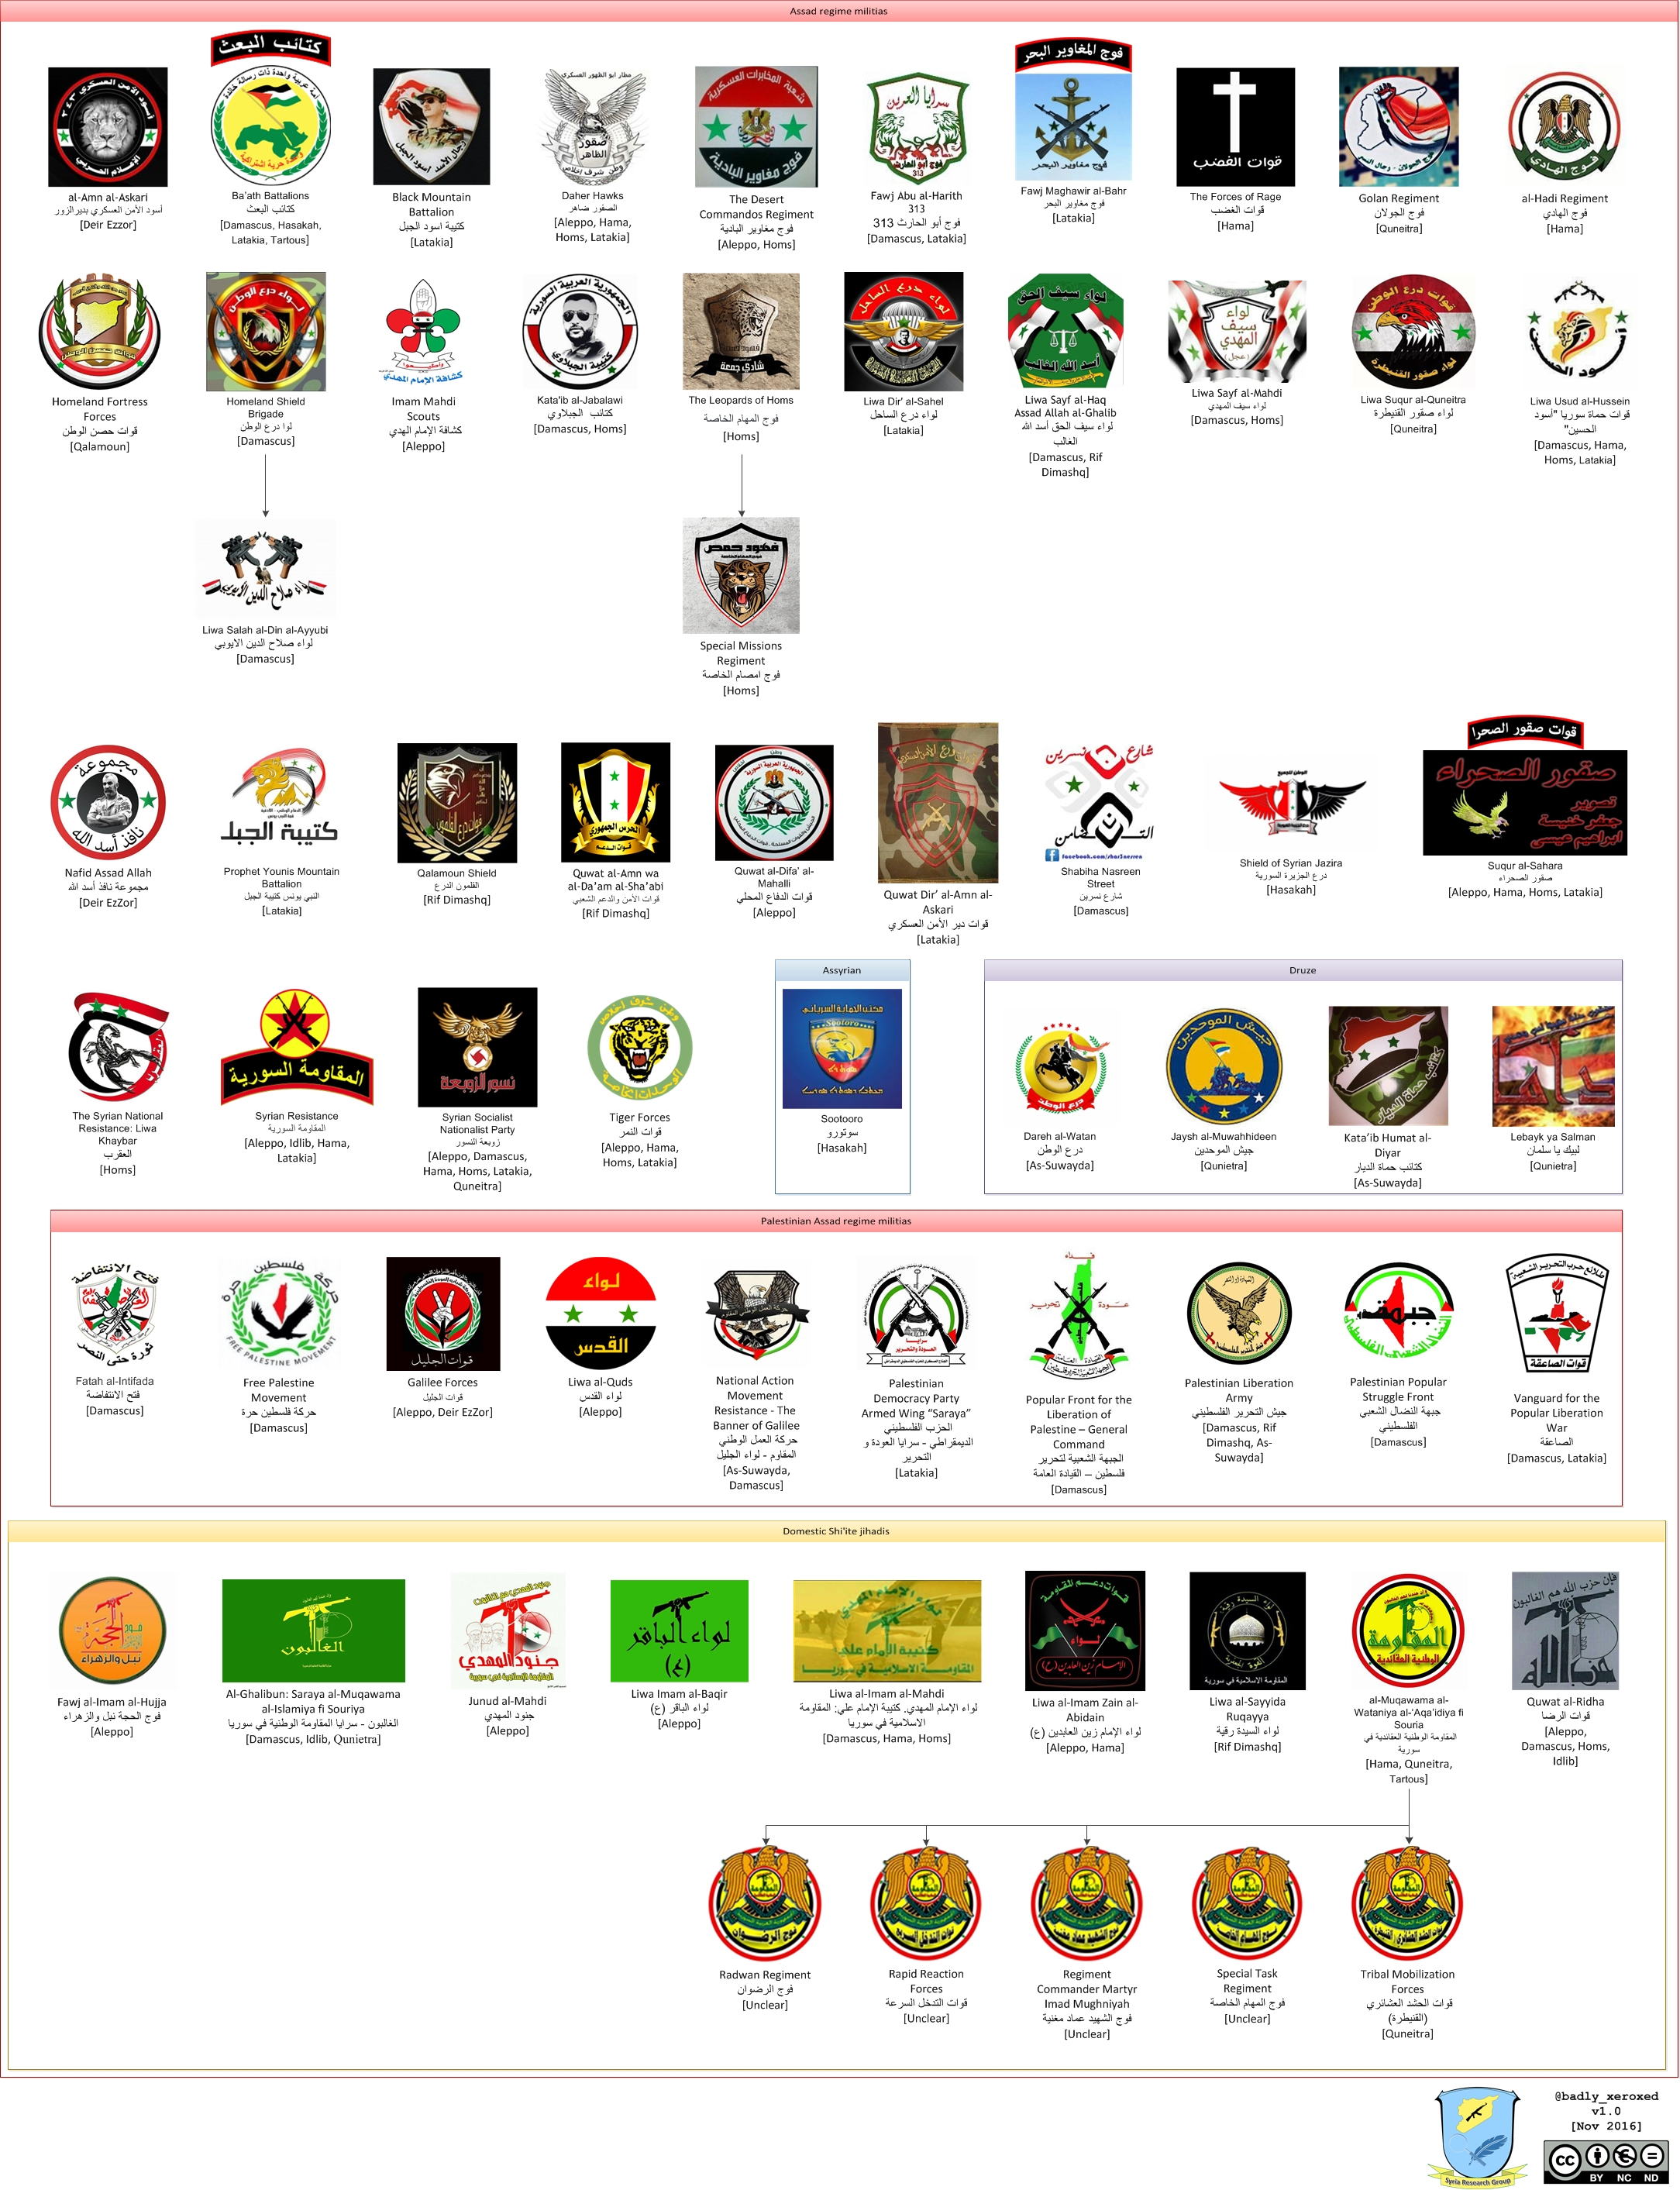 Syria's Armed Forces in the 7th Year of War